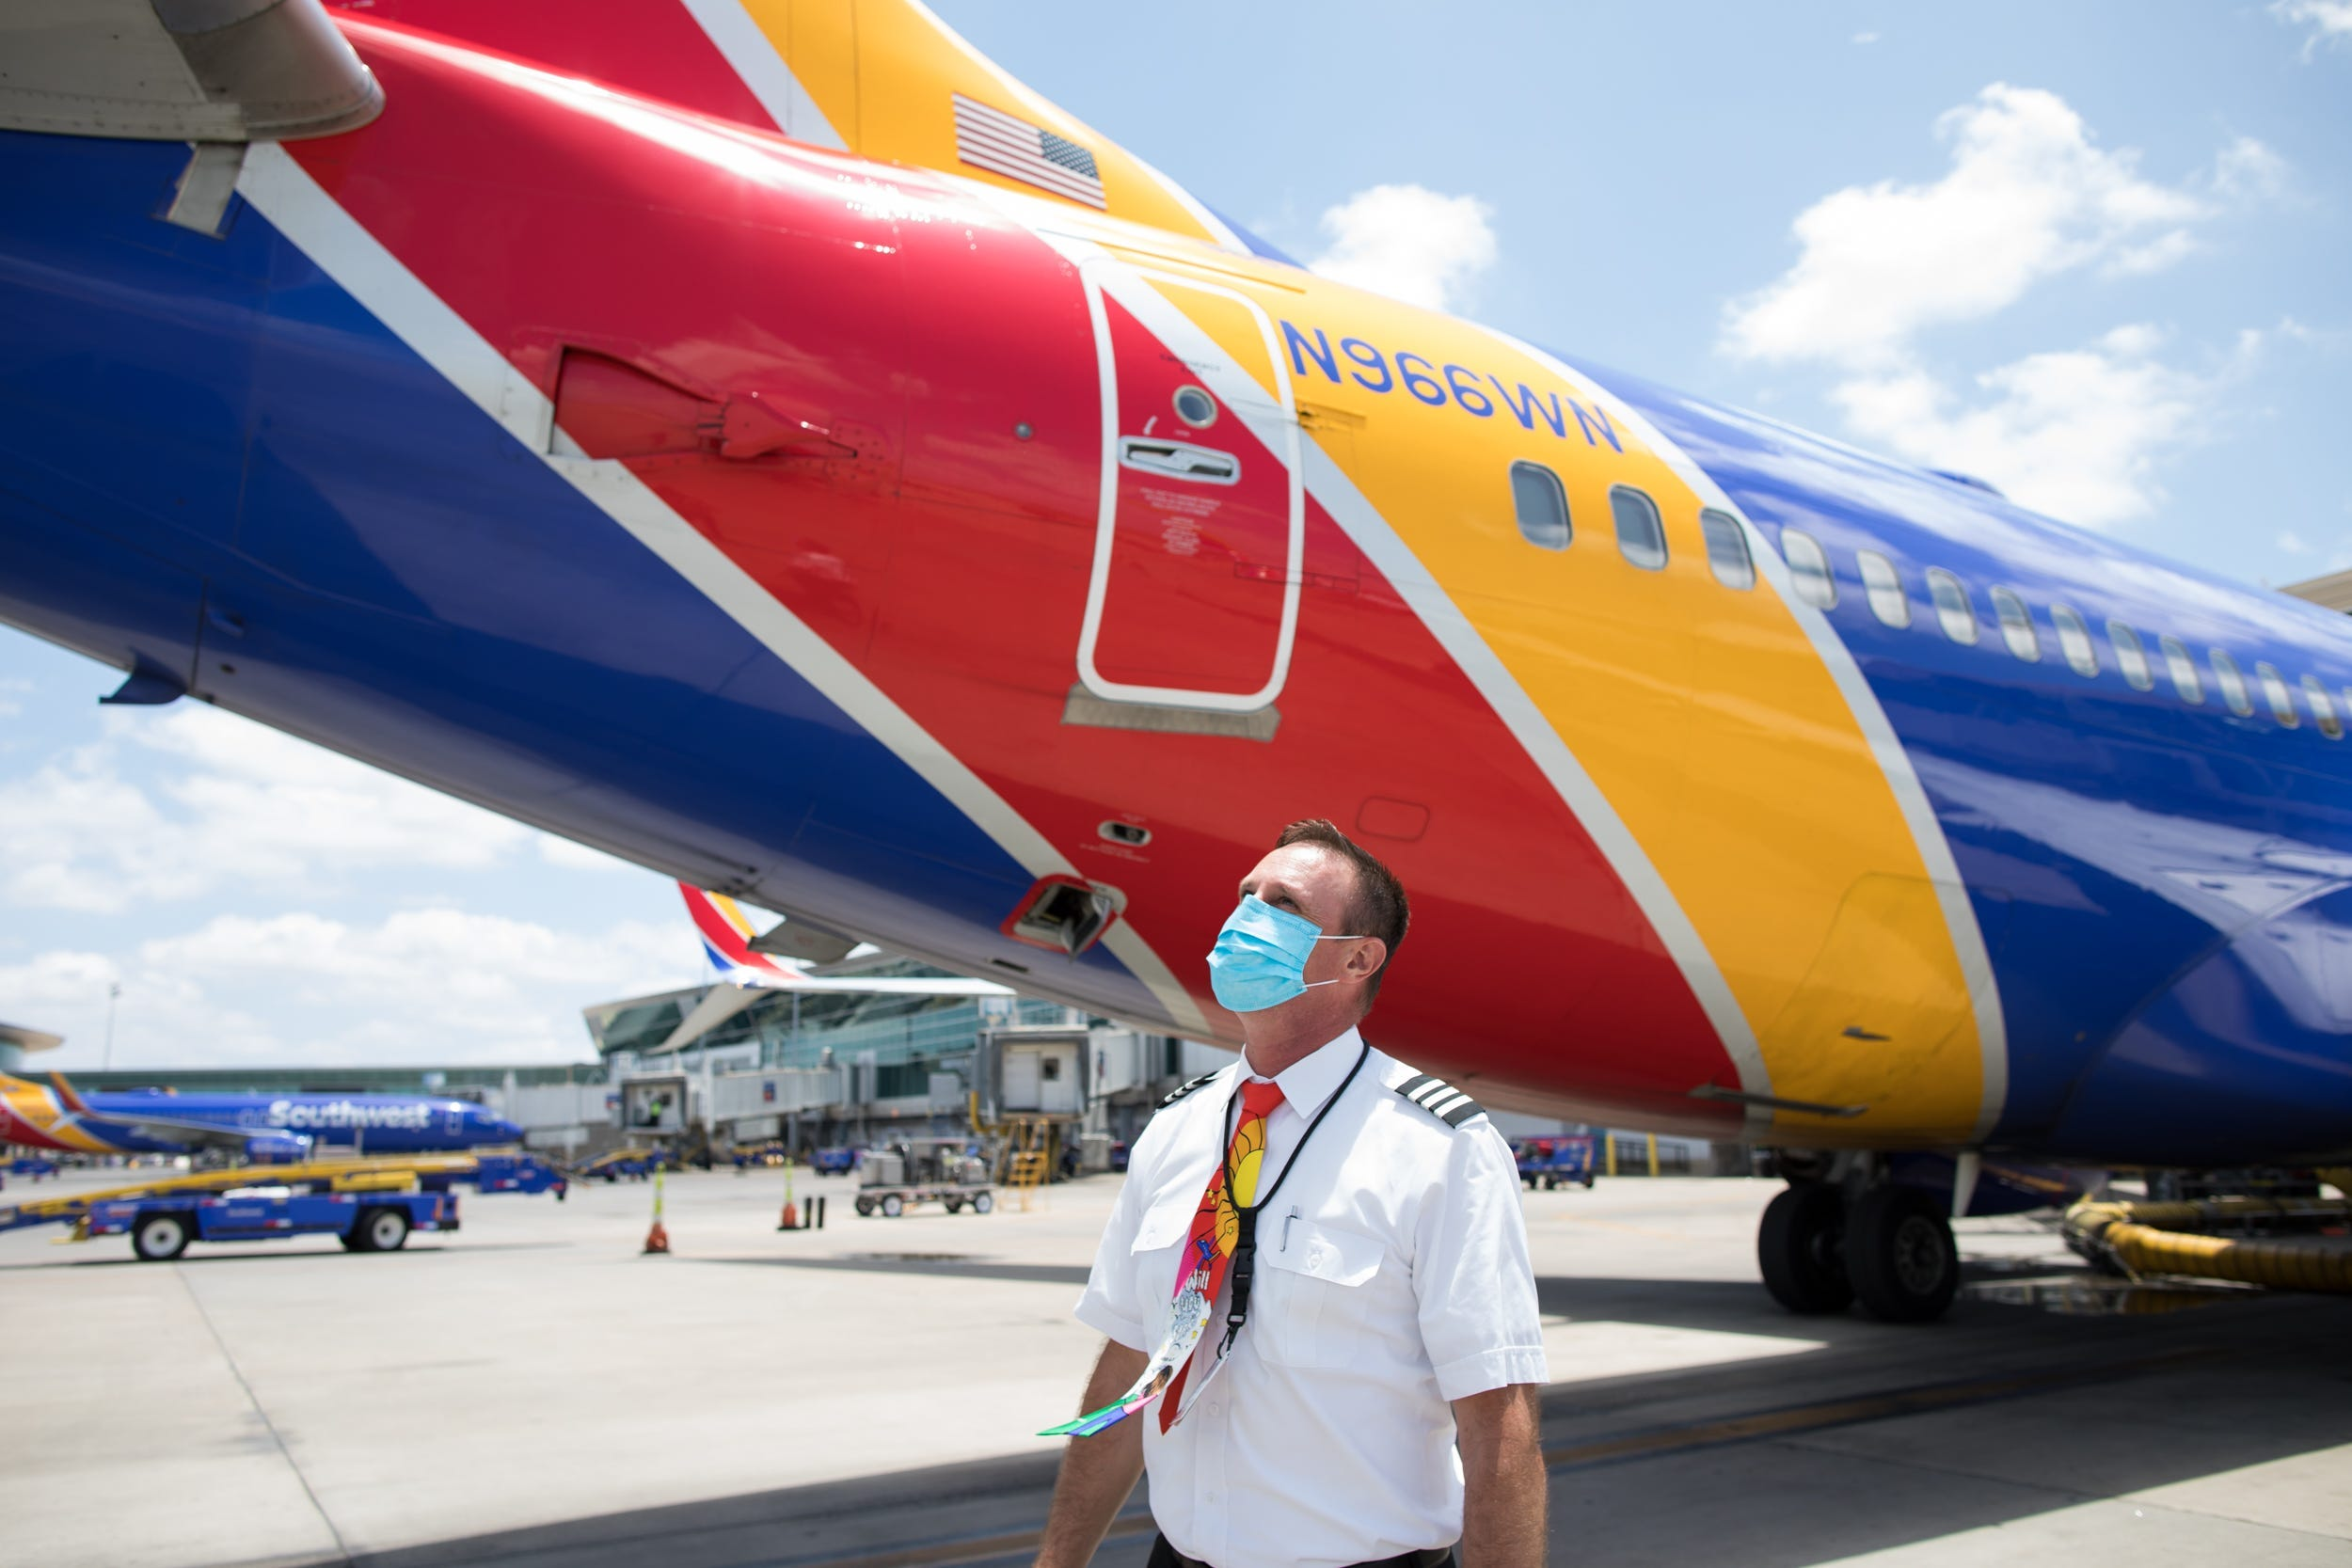 Southwest grows again: Airline adding two more cities, giving it a dozen new destinations